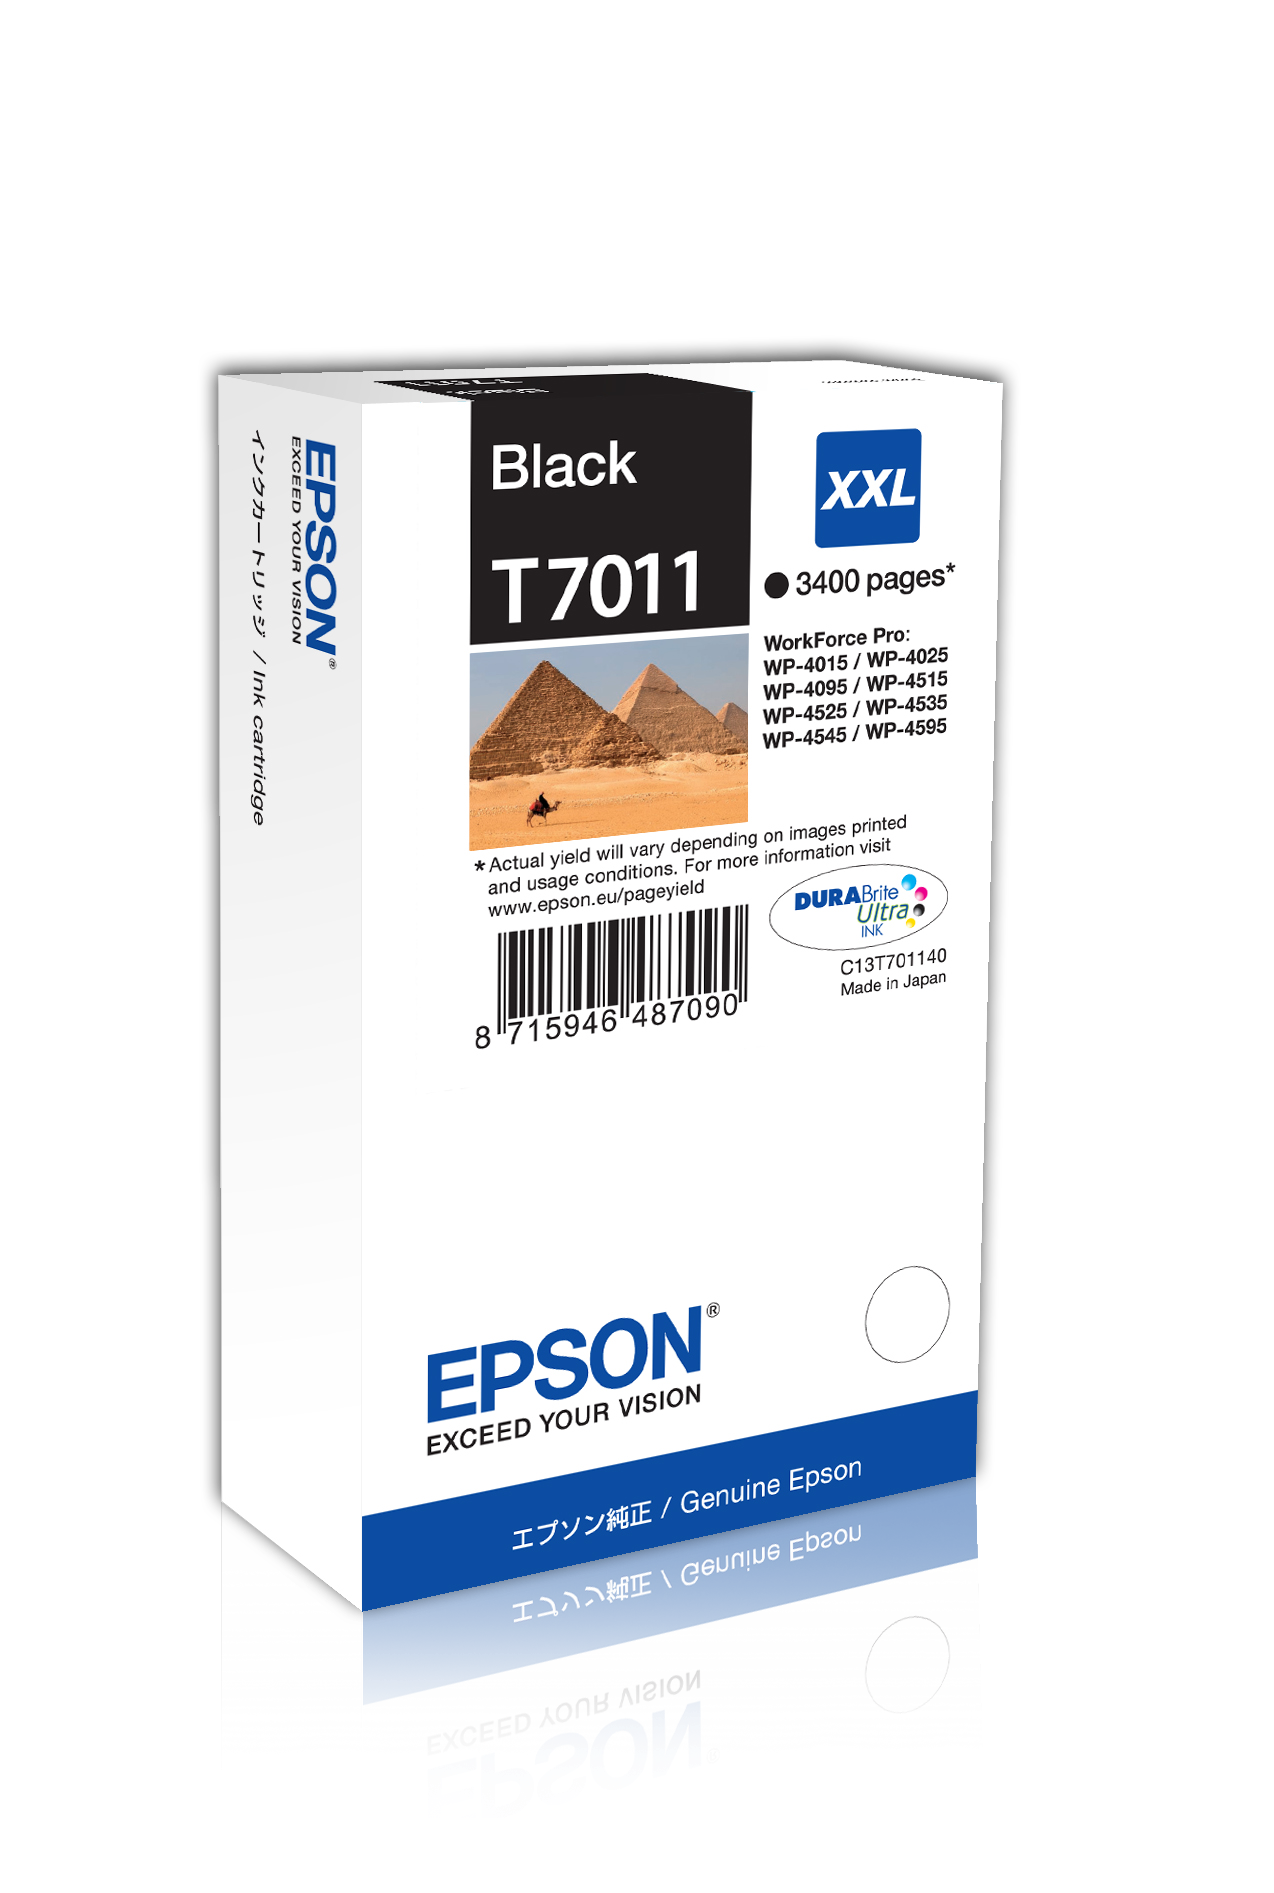 EPSON Ink Cartridge Black XXL WP4000 kārtridžs